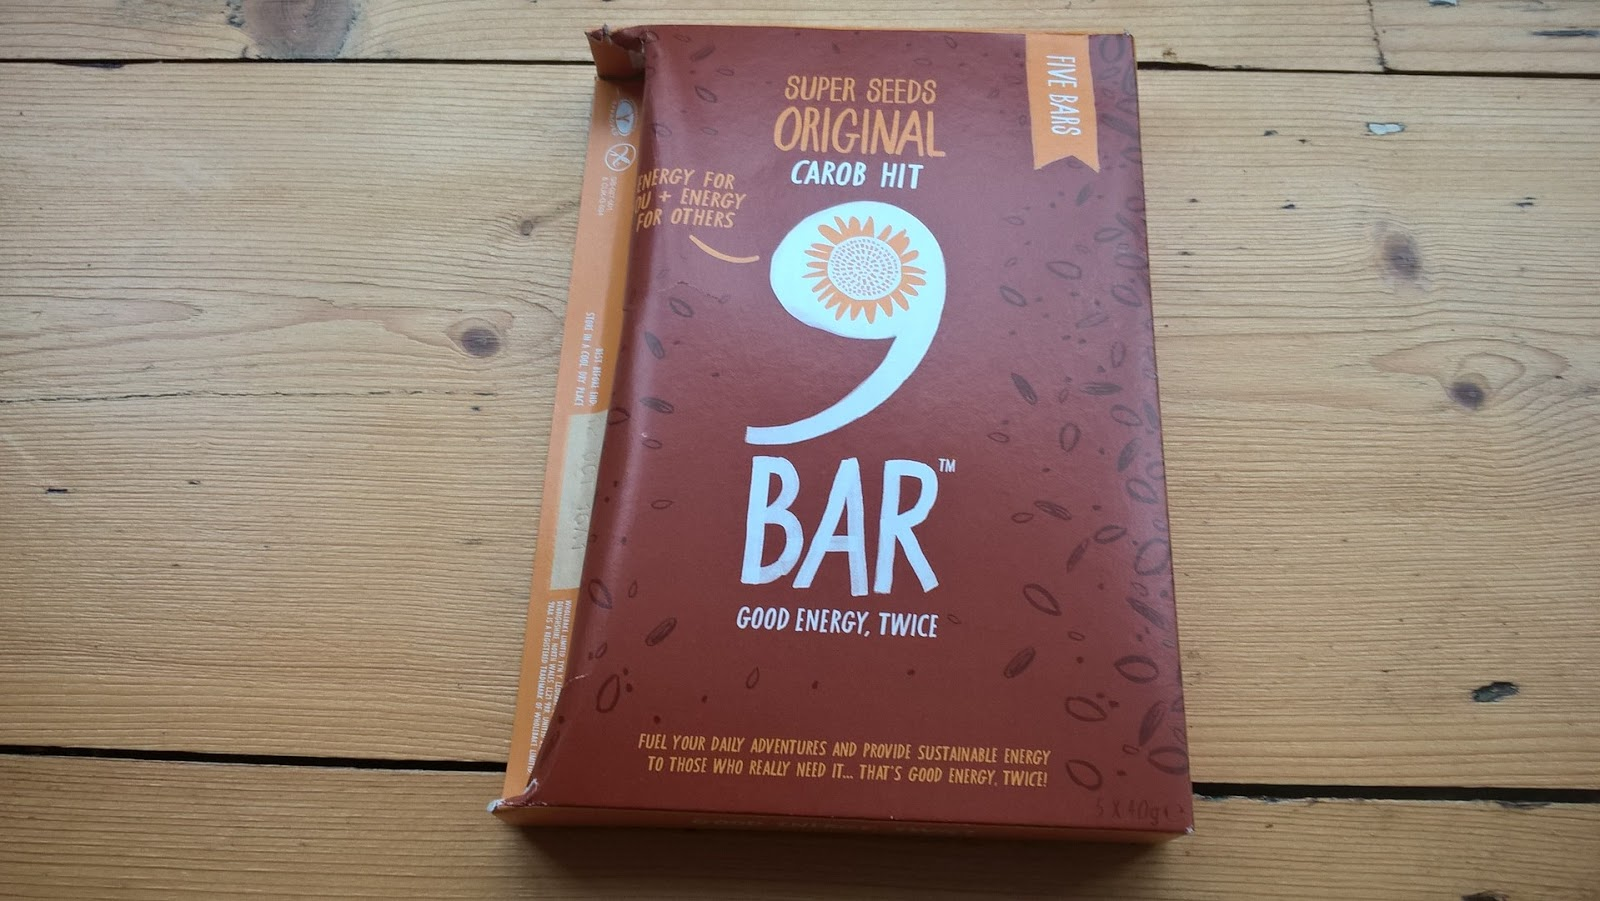 Box of 9 Bar Original Carob Bars